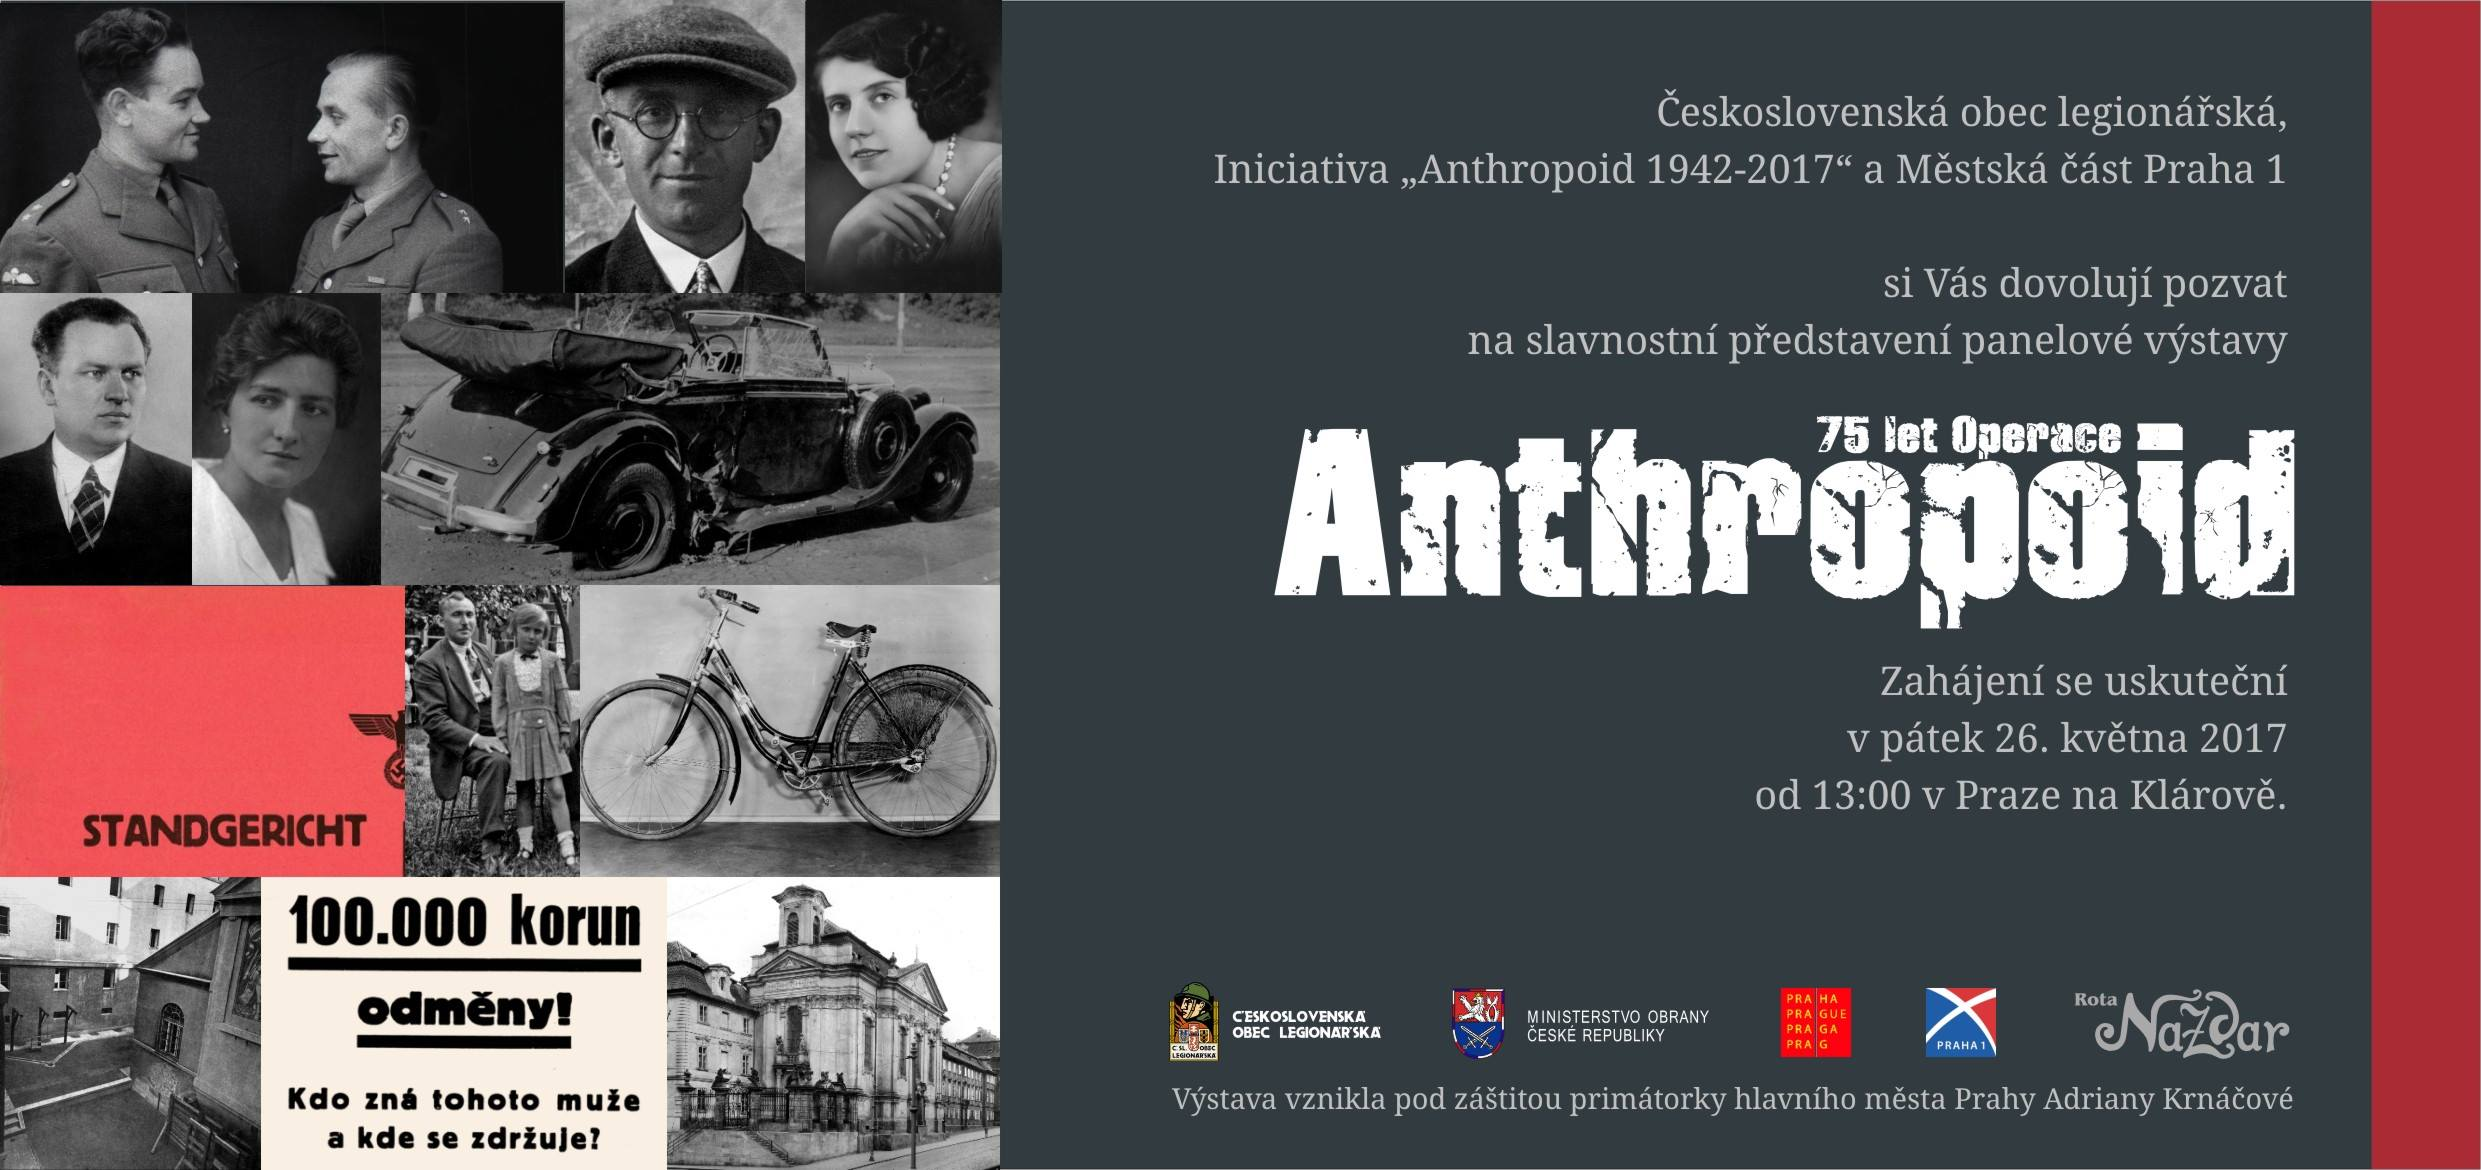 2017-05-26 - 75 let operace ANTHROPOID